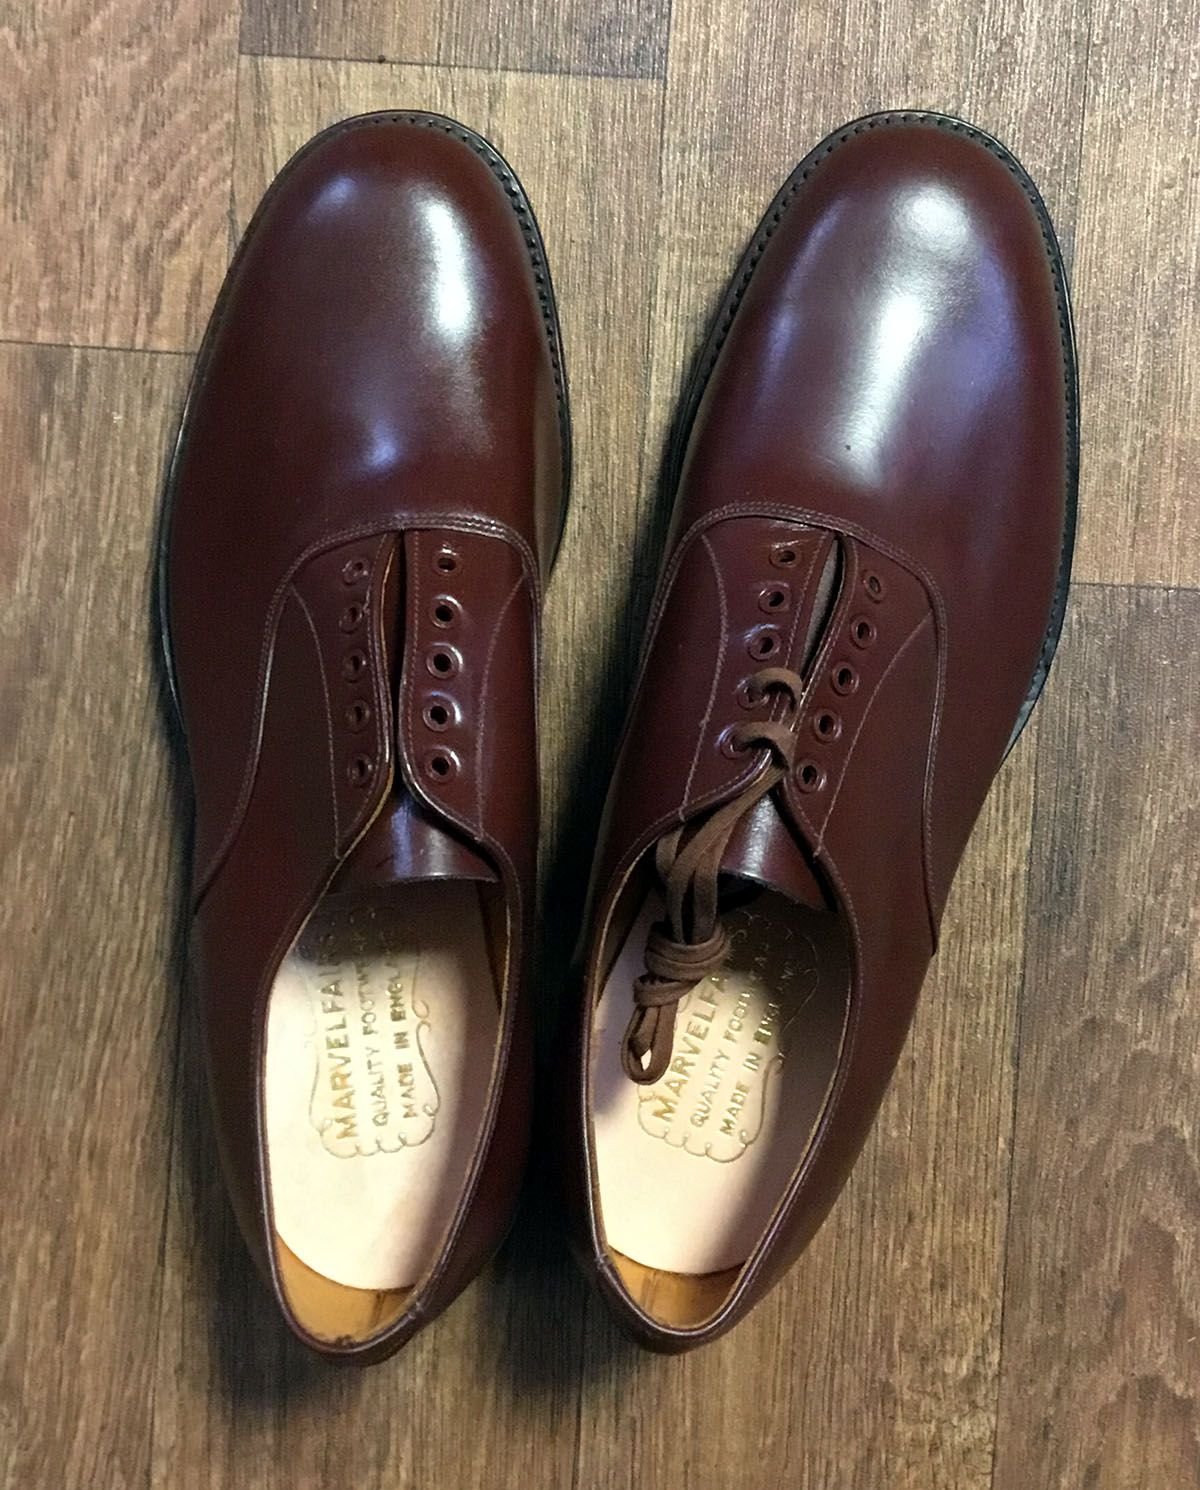 Mens Original Deadstock 1940s Brown Leather Shoes From My Vintage Vintage Shoes Mens Shoes Mens Vint Leather Shoes Men Leather Oxford Shoes Leather Oxfords